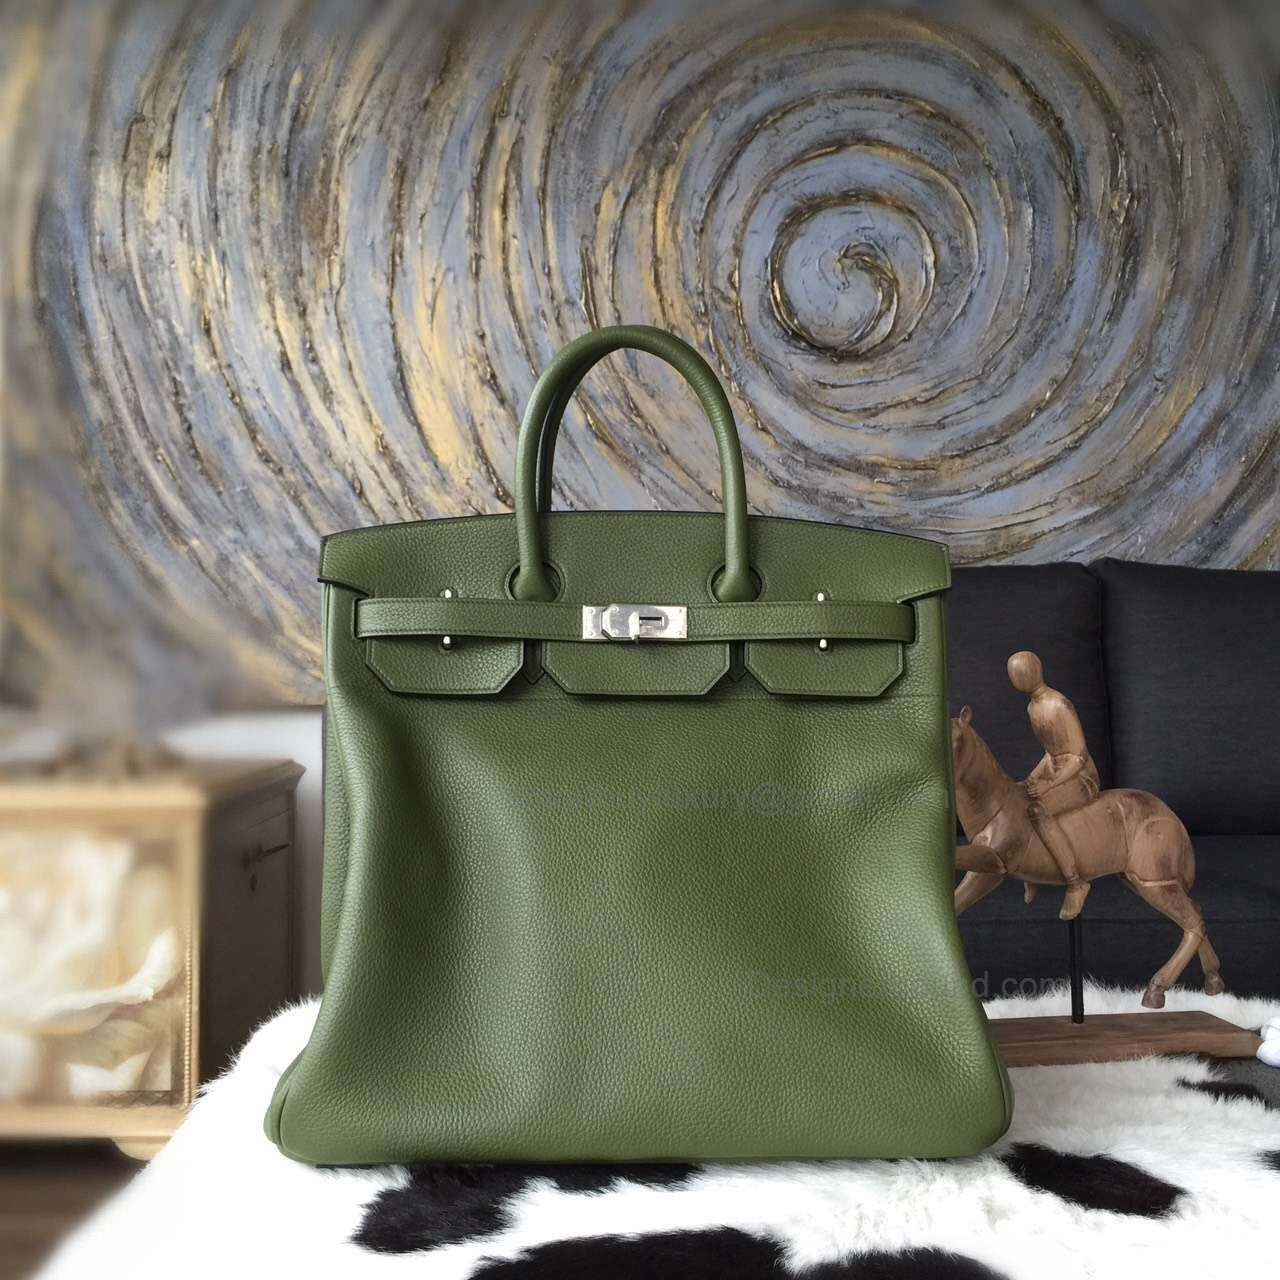 Hand Stitched Hermes Birkin Hac 40 Bag in V6 Canopee Clemence Calskin SHW